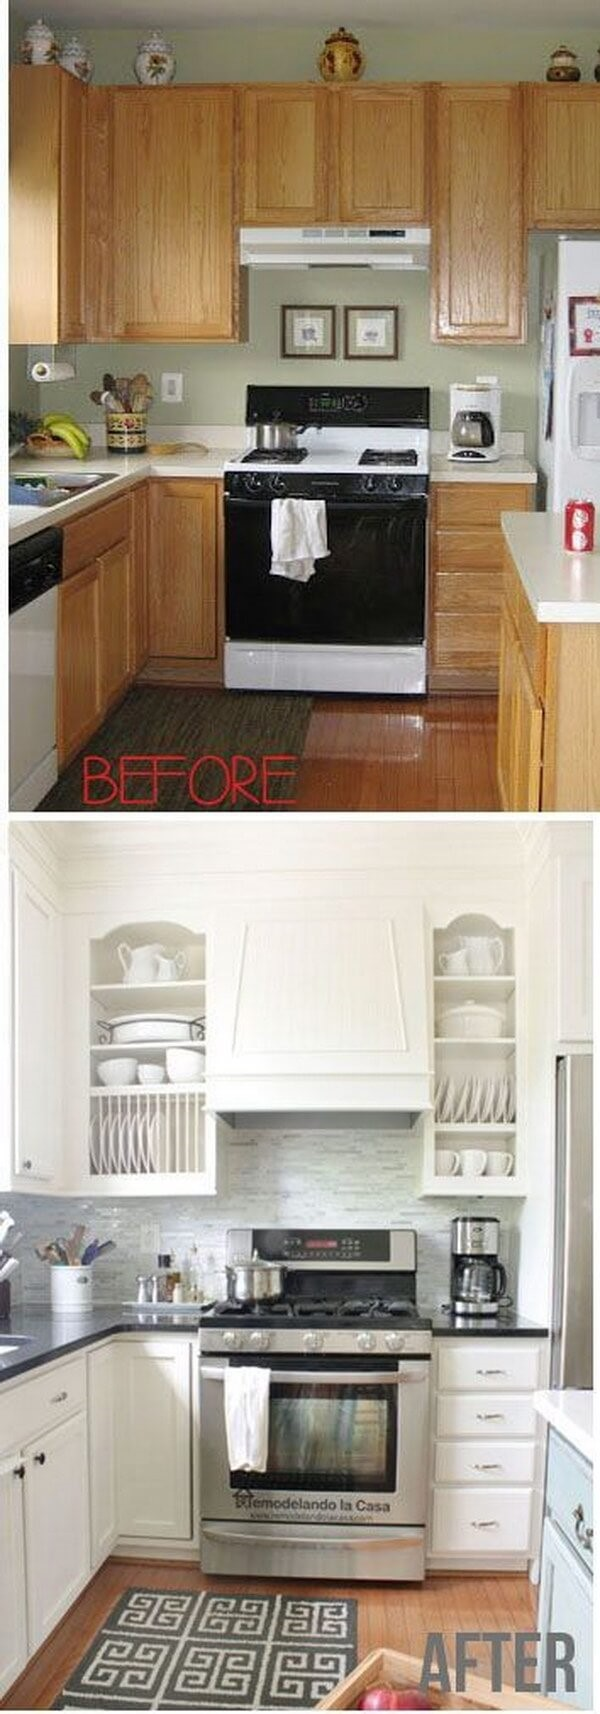 1. Remove the Cabinet Doors for a New Look via Simphome.com